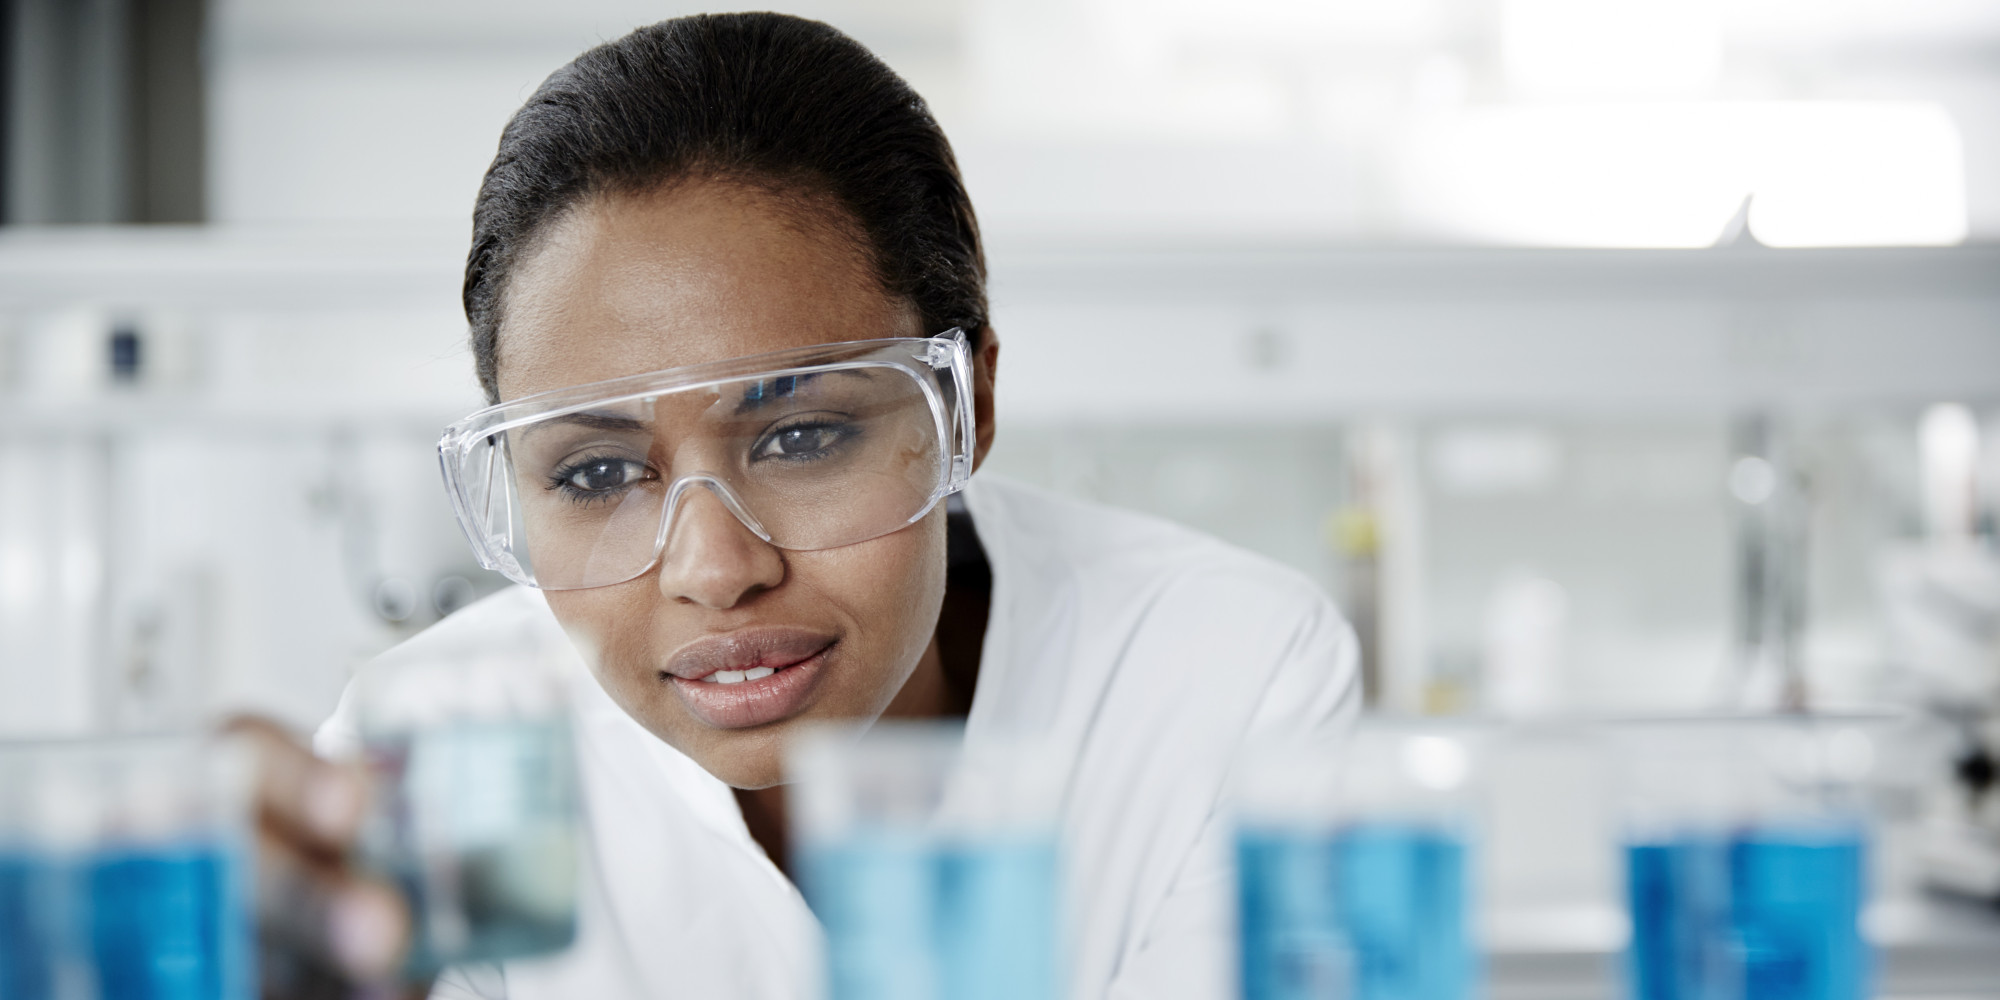 an easy way to help women in science huffpost